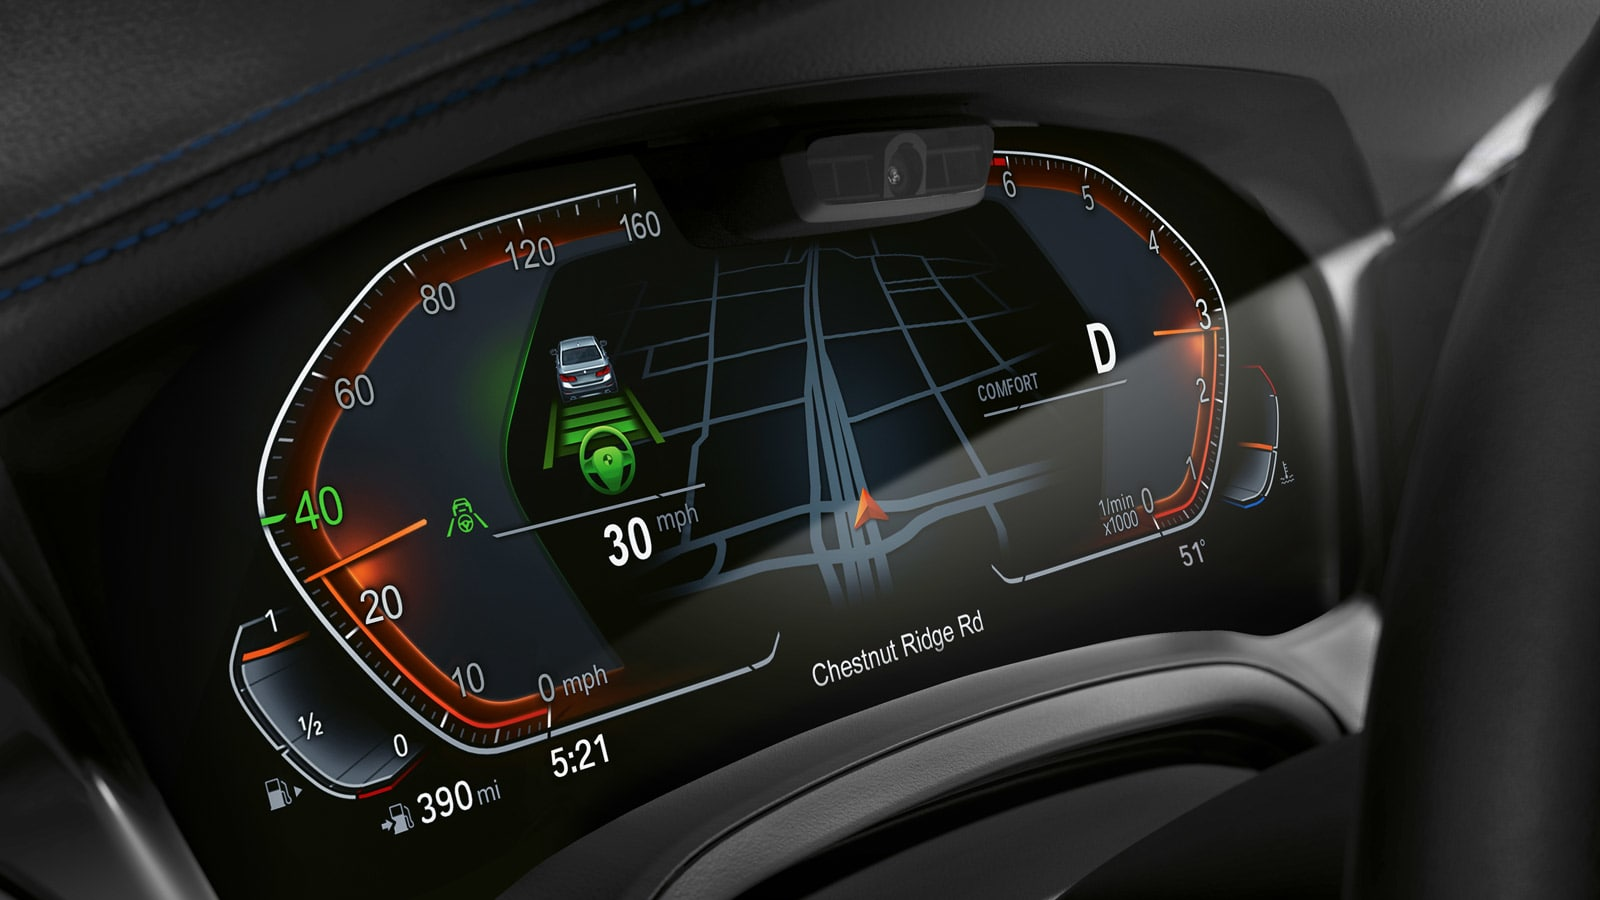 Technology in the BMW 3 Series